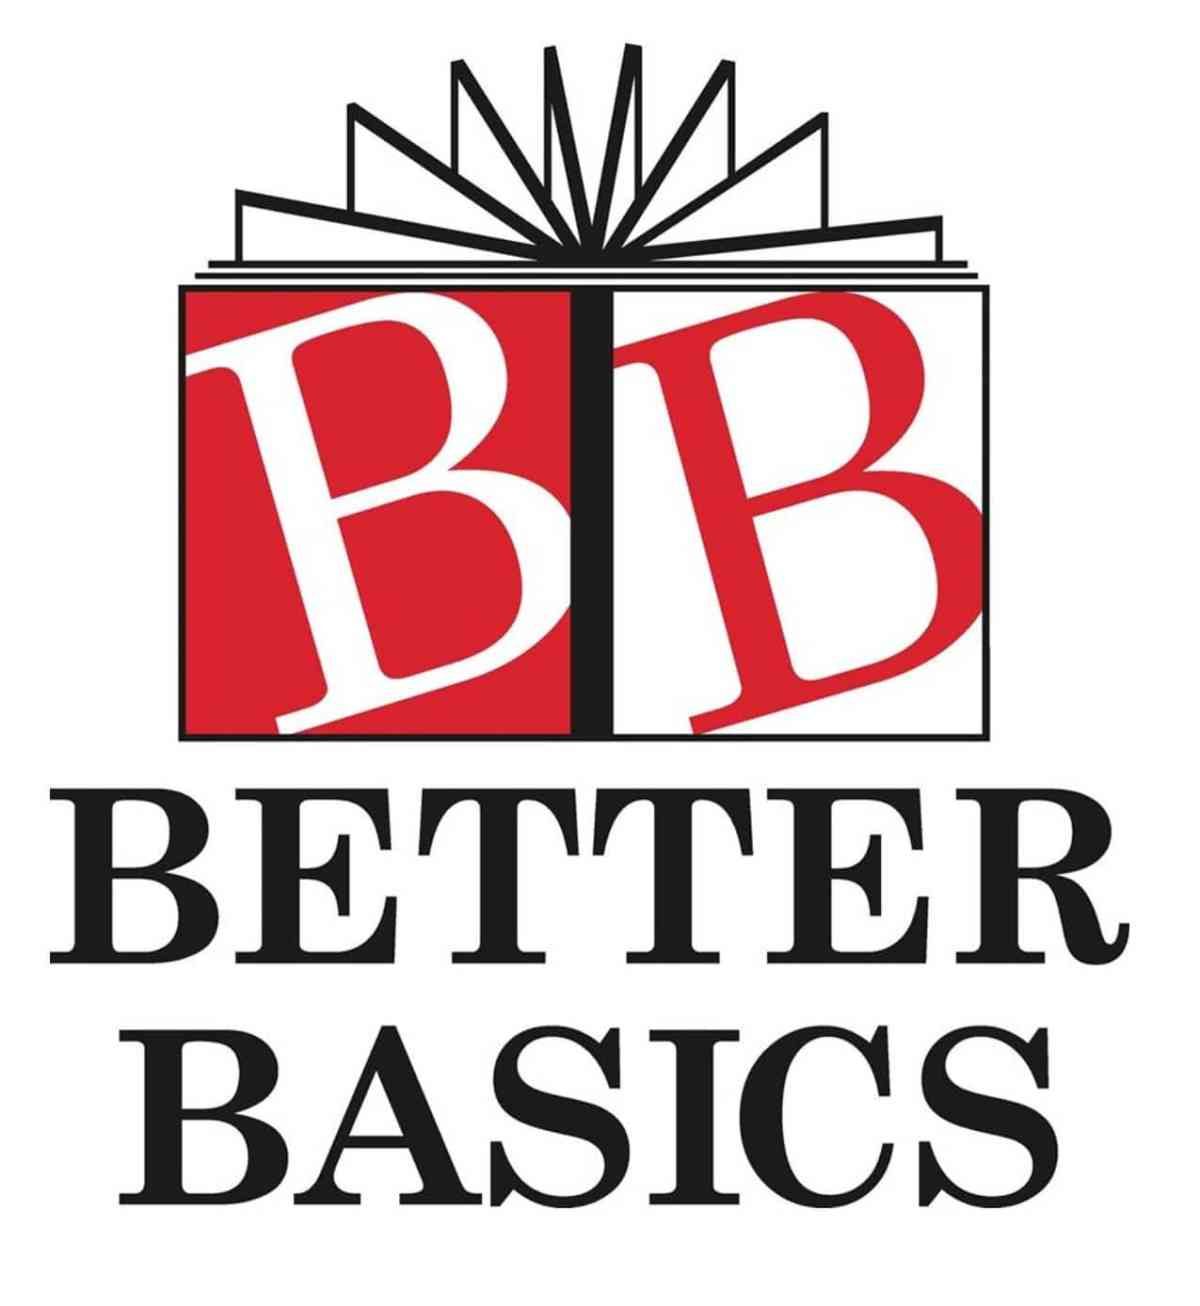 Better Basics Giveback Night at Ghost Train Brewing Co.